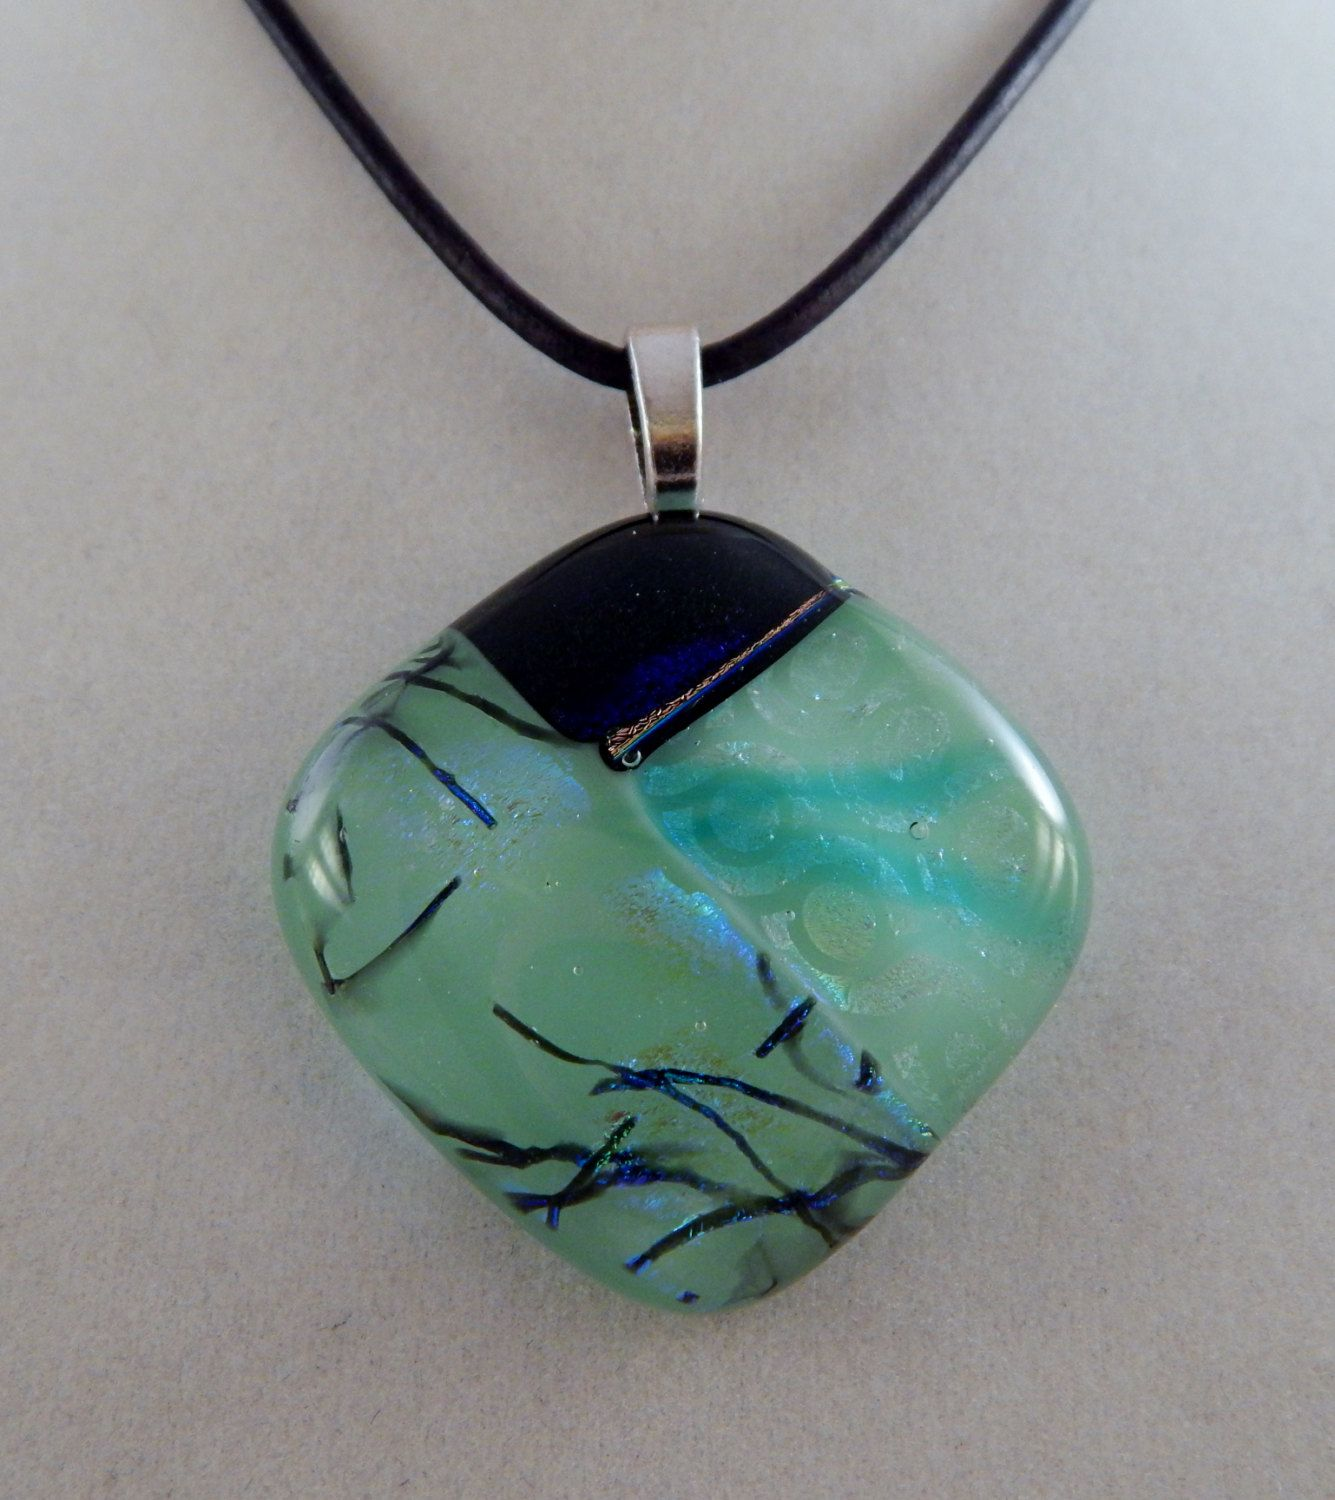 Green dichroic glass pendant by zacintheboxcreations on etsy green dichroic glass pendant by zacintheboxcreations on etsy aloadofball Gallery